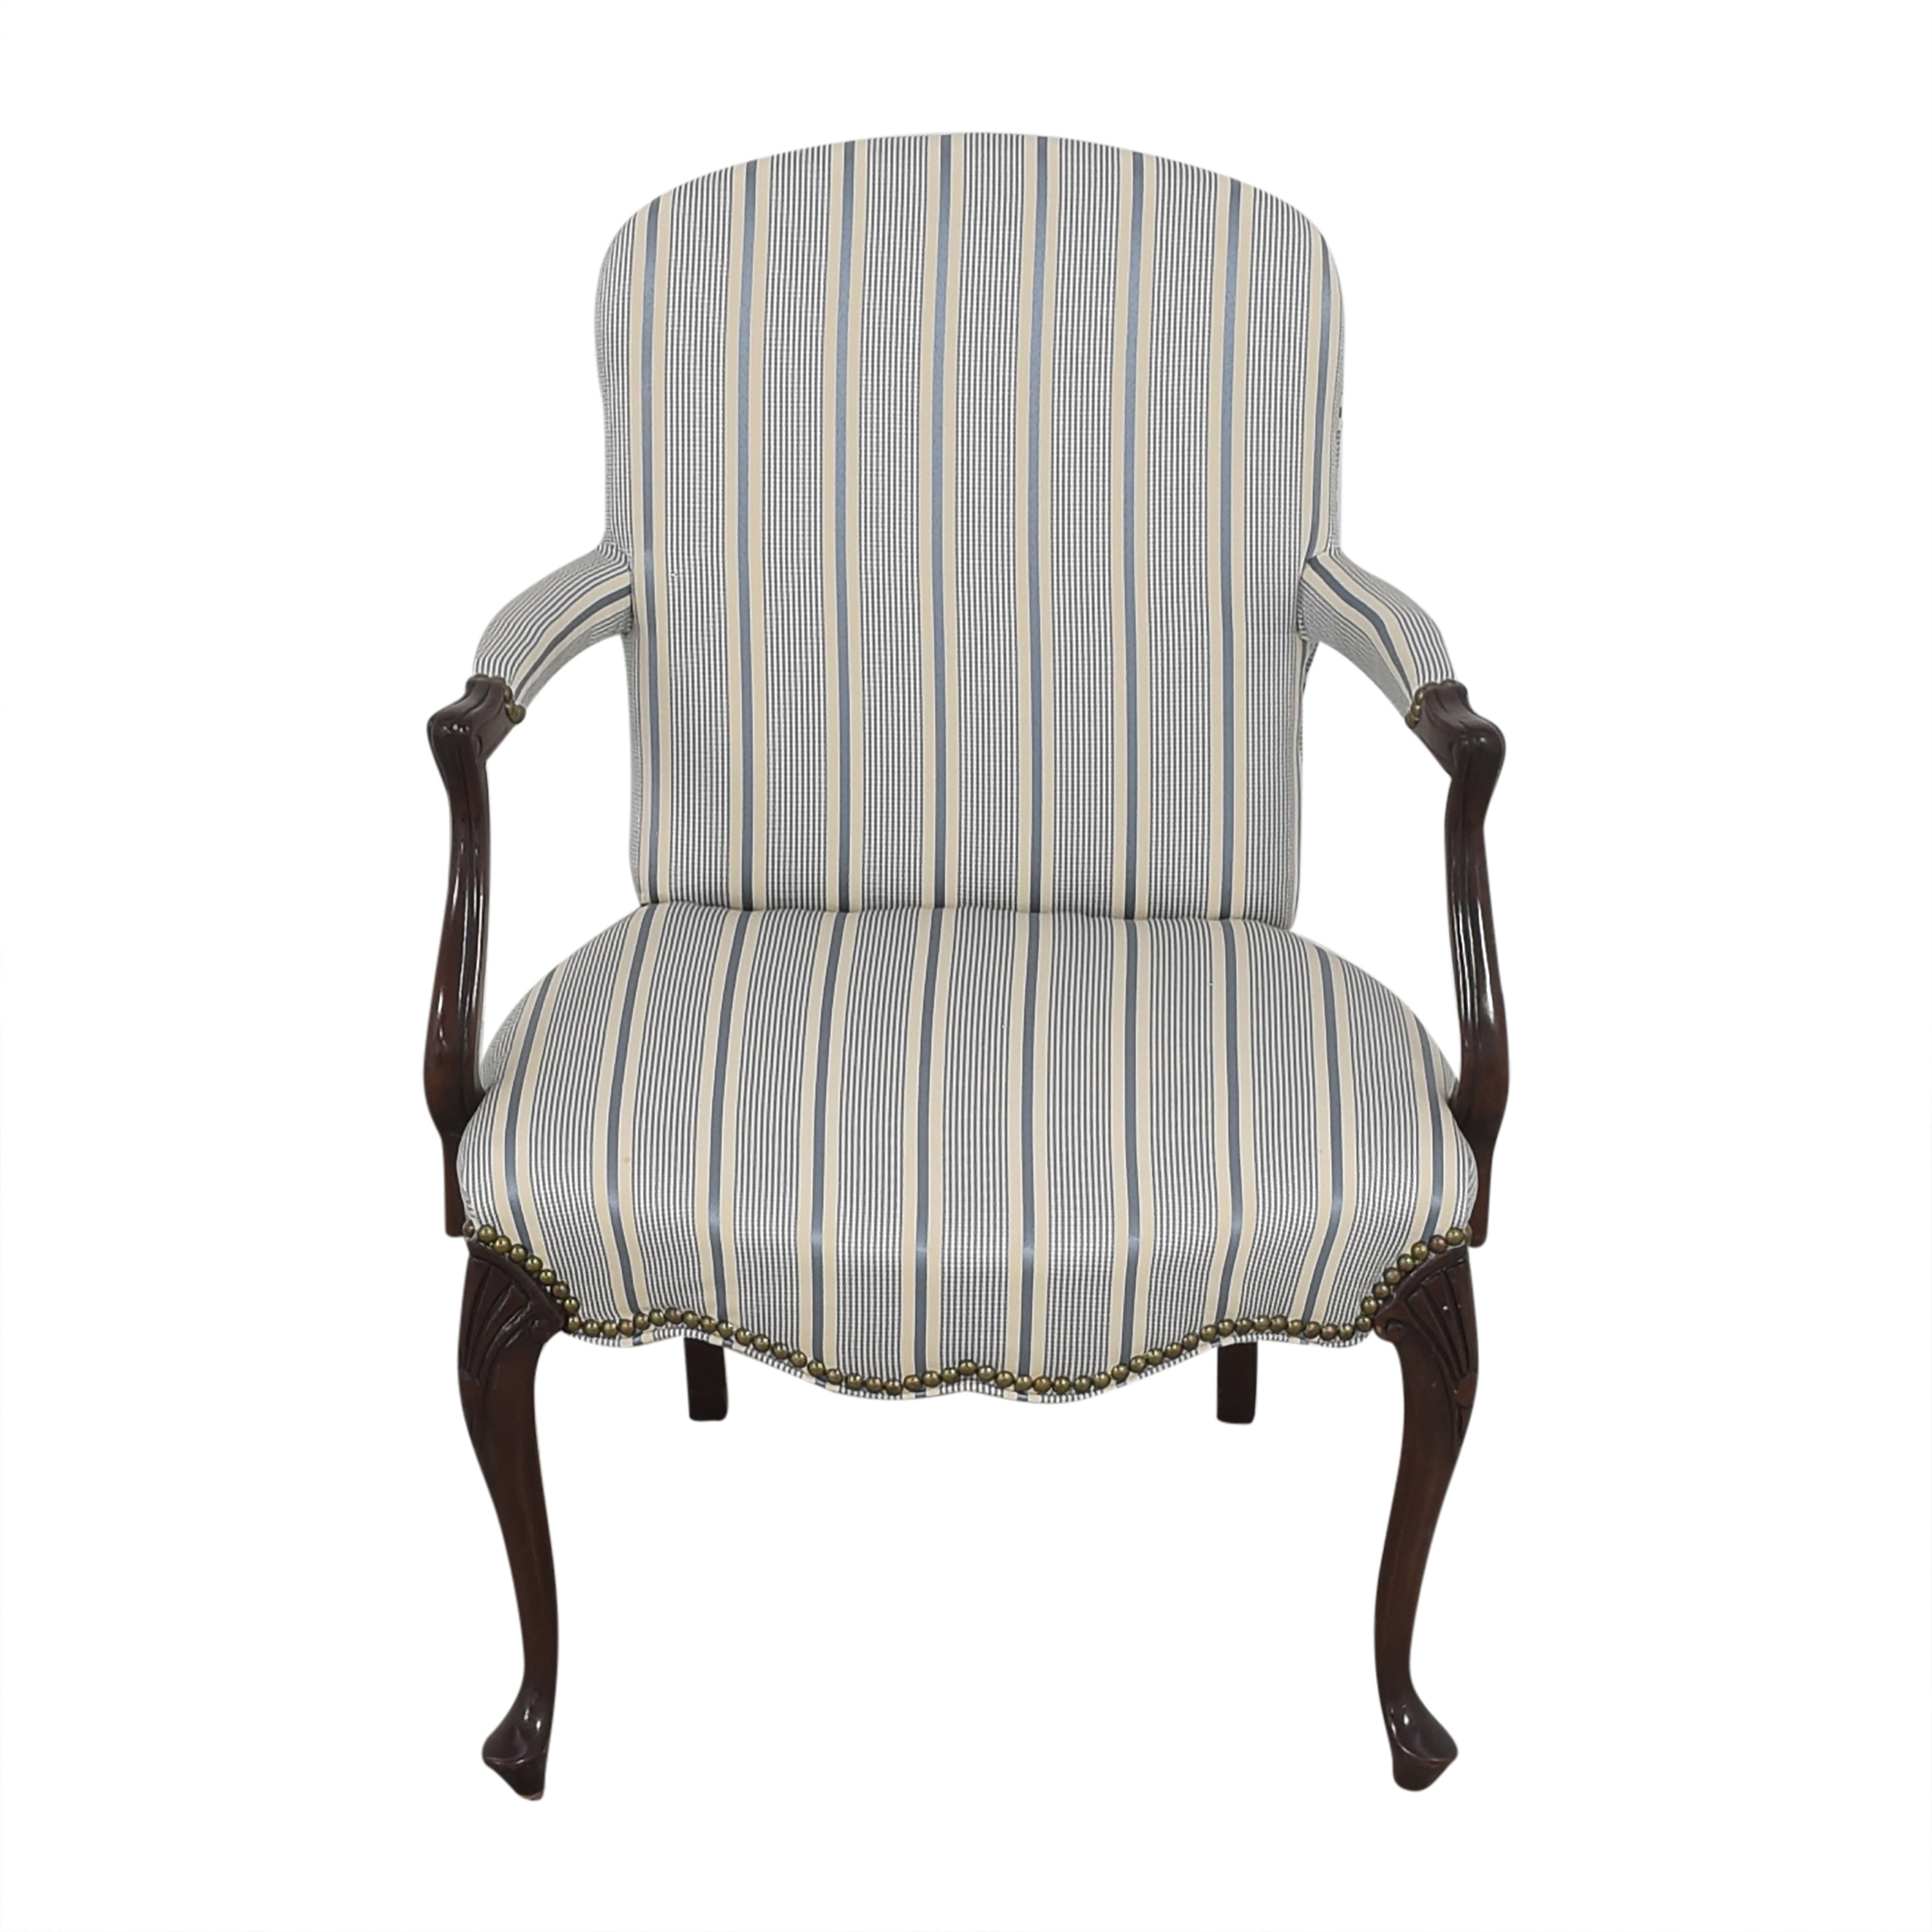 Hickory Chair Hickory Chair Upholstered Accent Chair ma